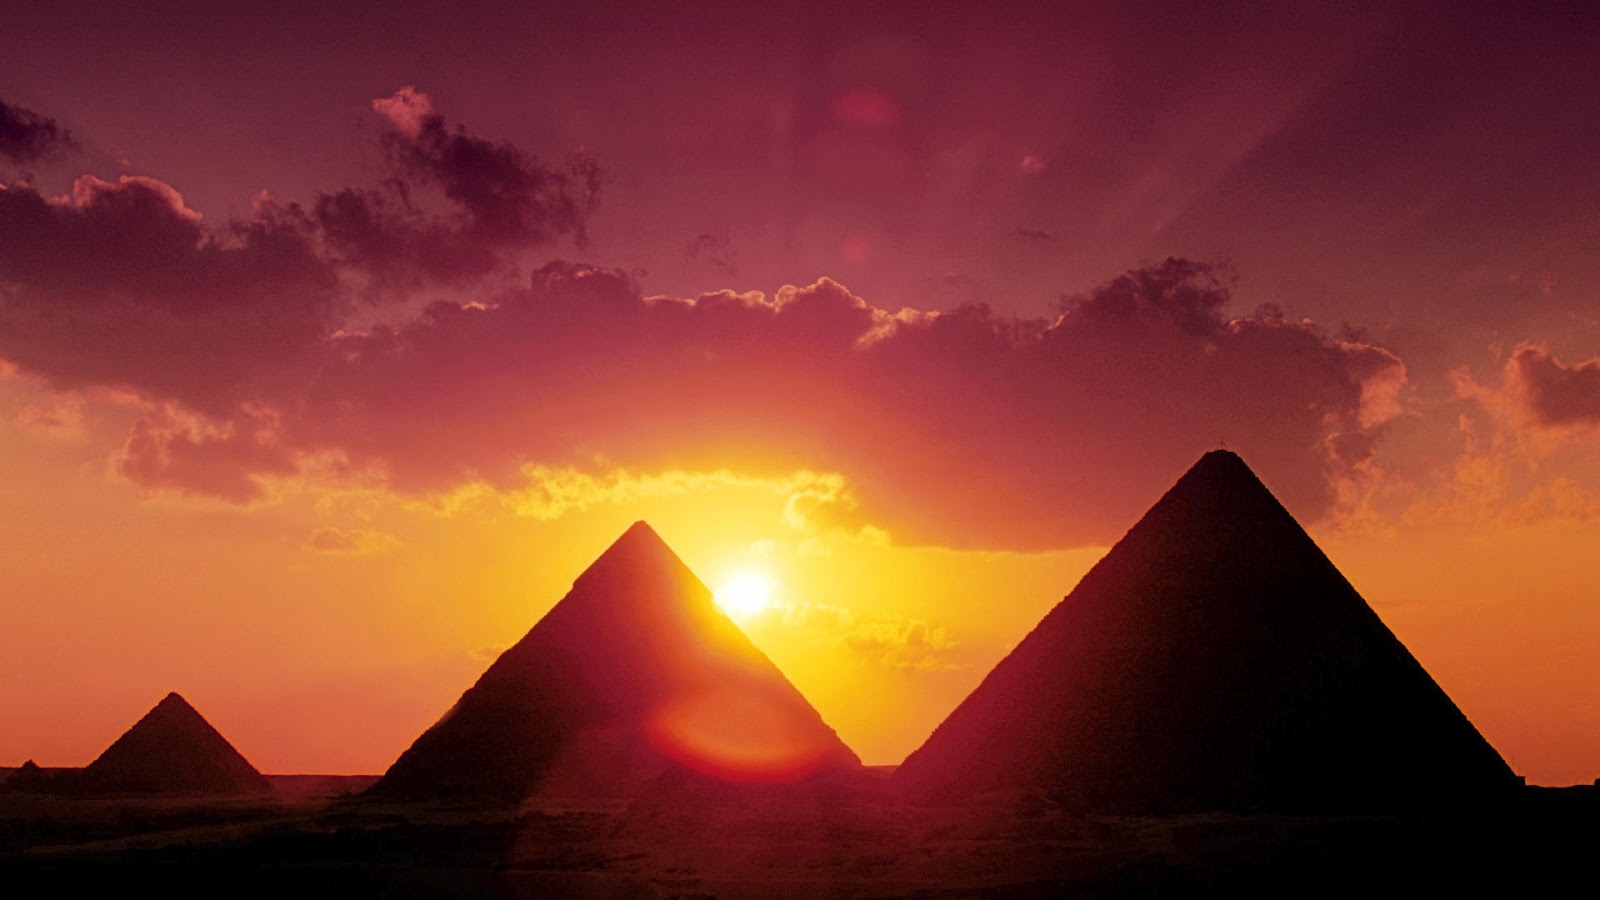 Giza Pyramids Photo Giza Pyramids Wallpaper Download  - pyramids of giza egypt wallpapers